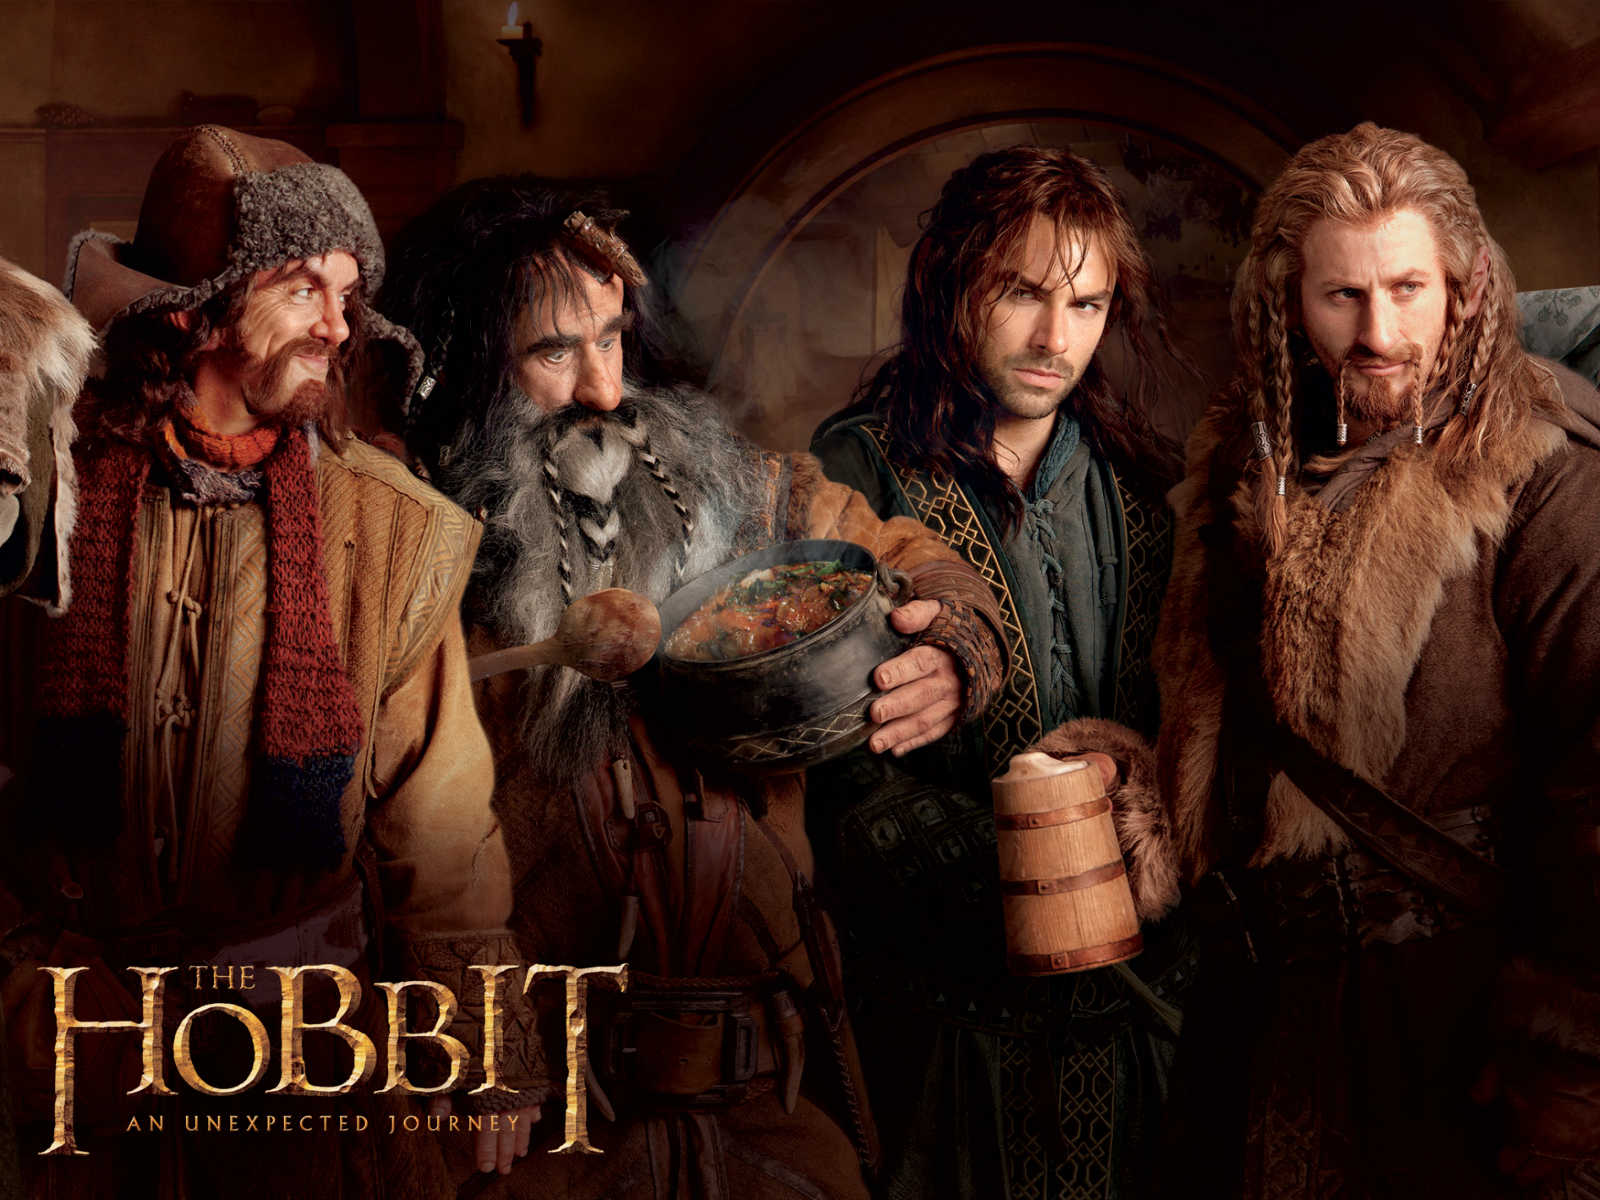 The Hobbit (credit: New Line Cinemas)